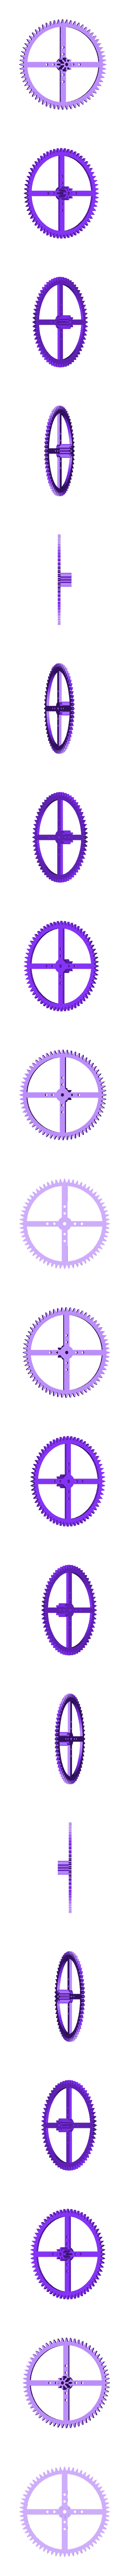 gear64_8.stl Download free STL file The First Clock • 3D print design, JacquesFavre